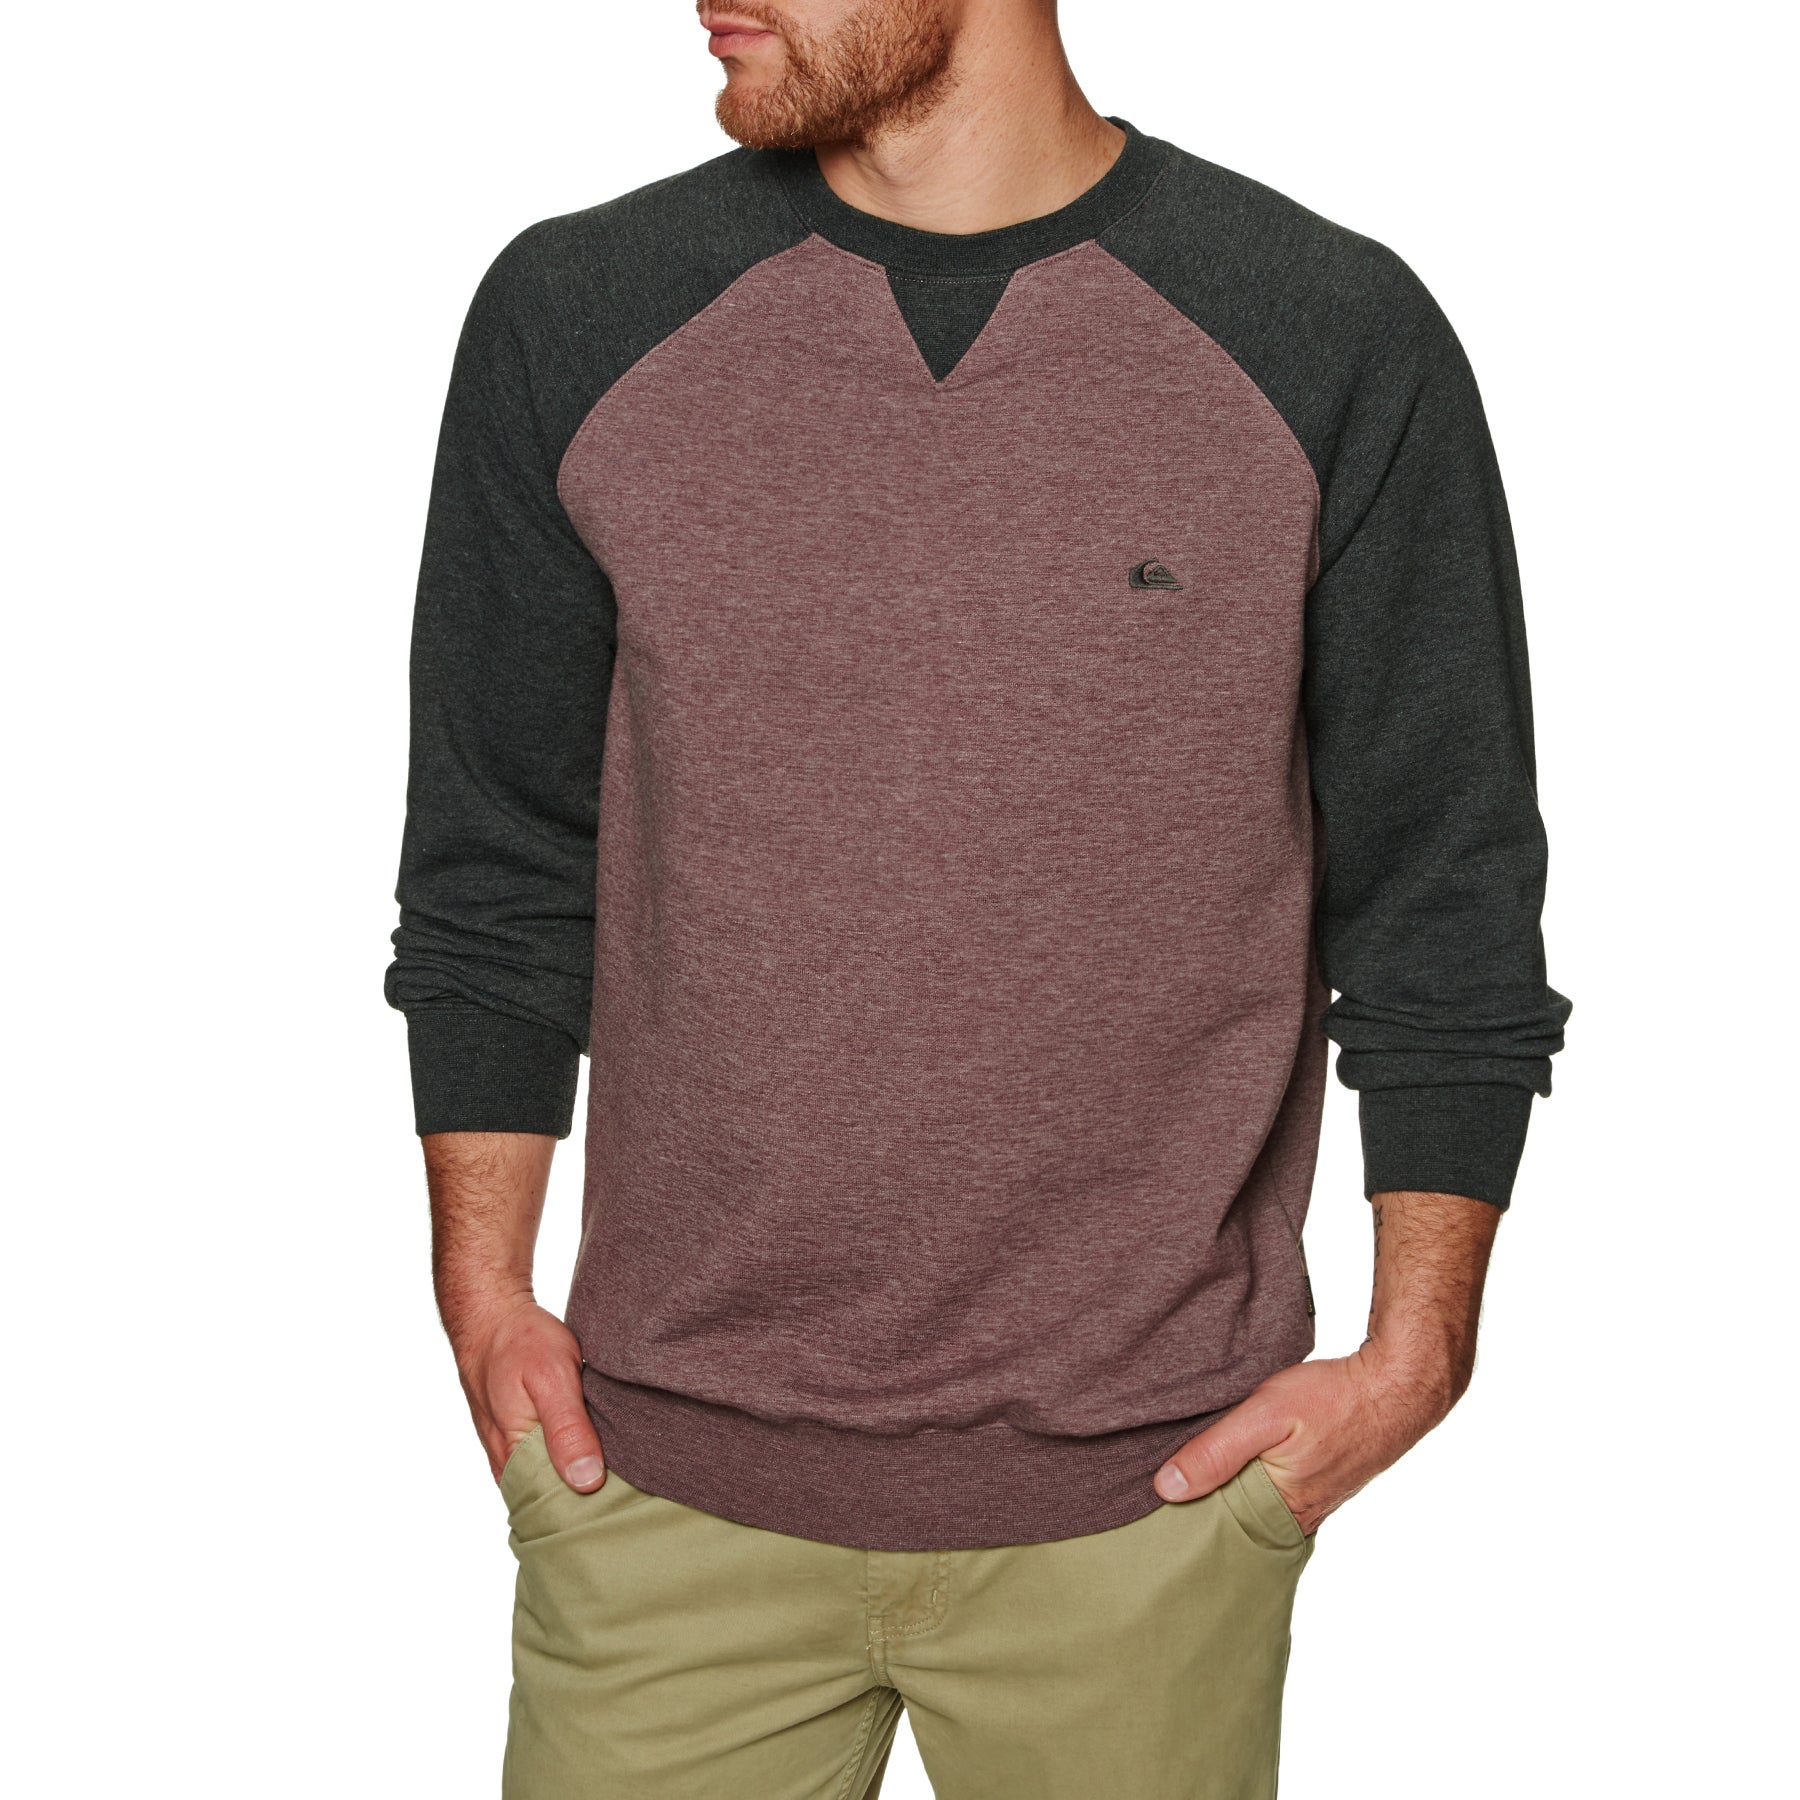 Quiksilver 2017 Everyday Crew Sweater